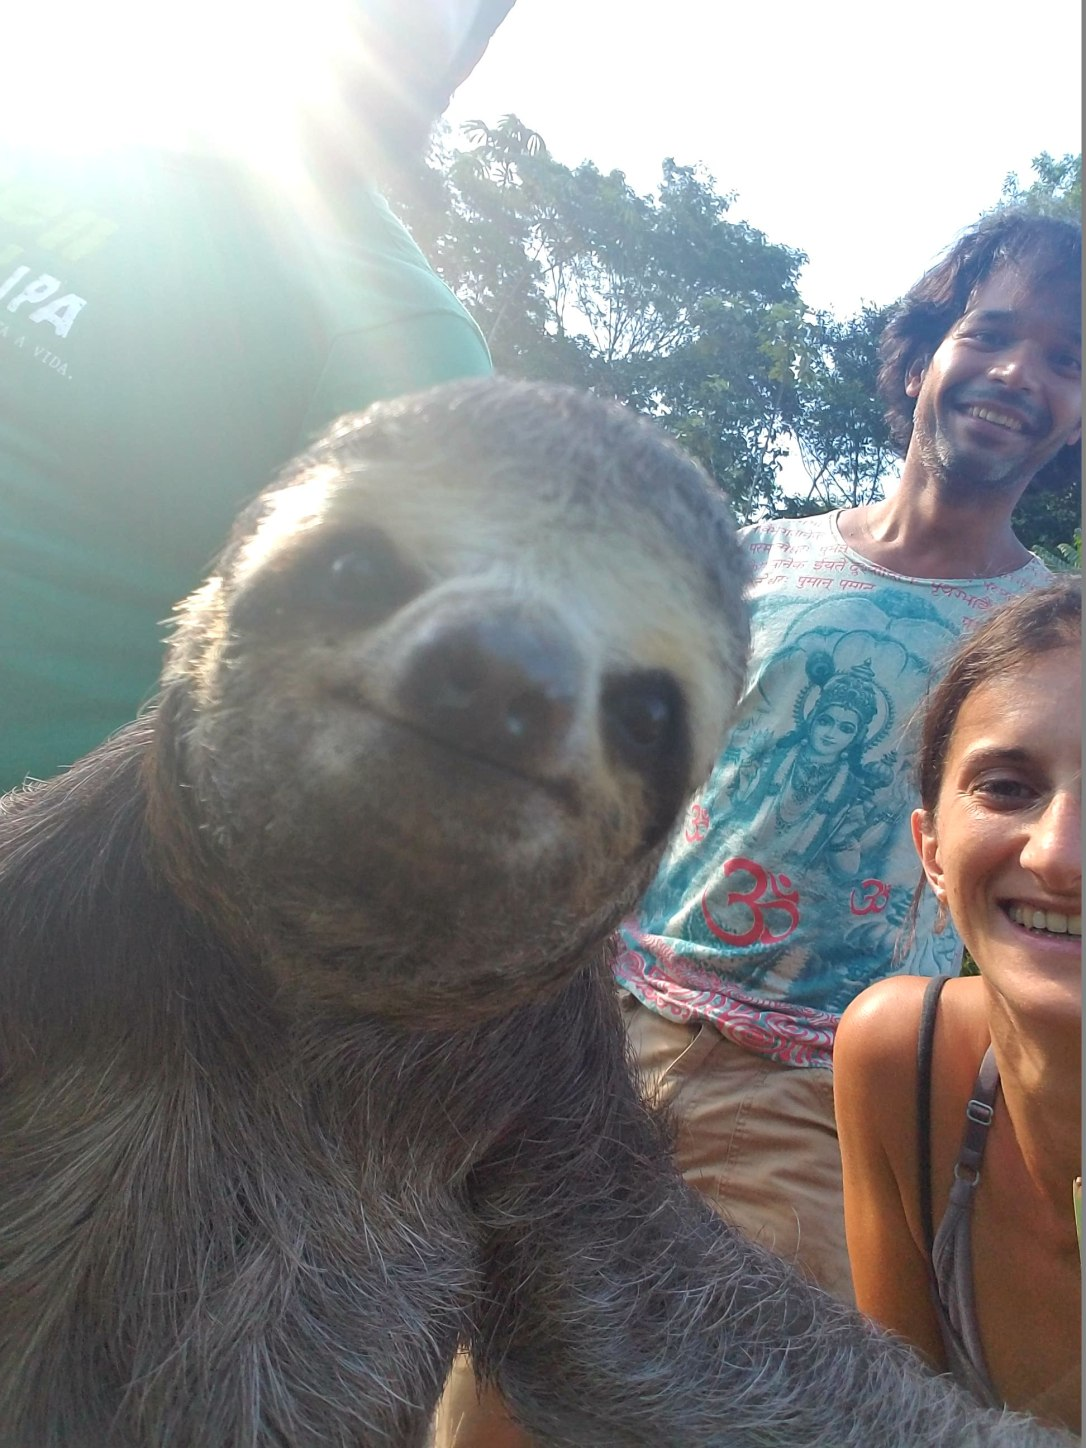 River-Sea sloth selfie